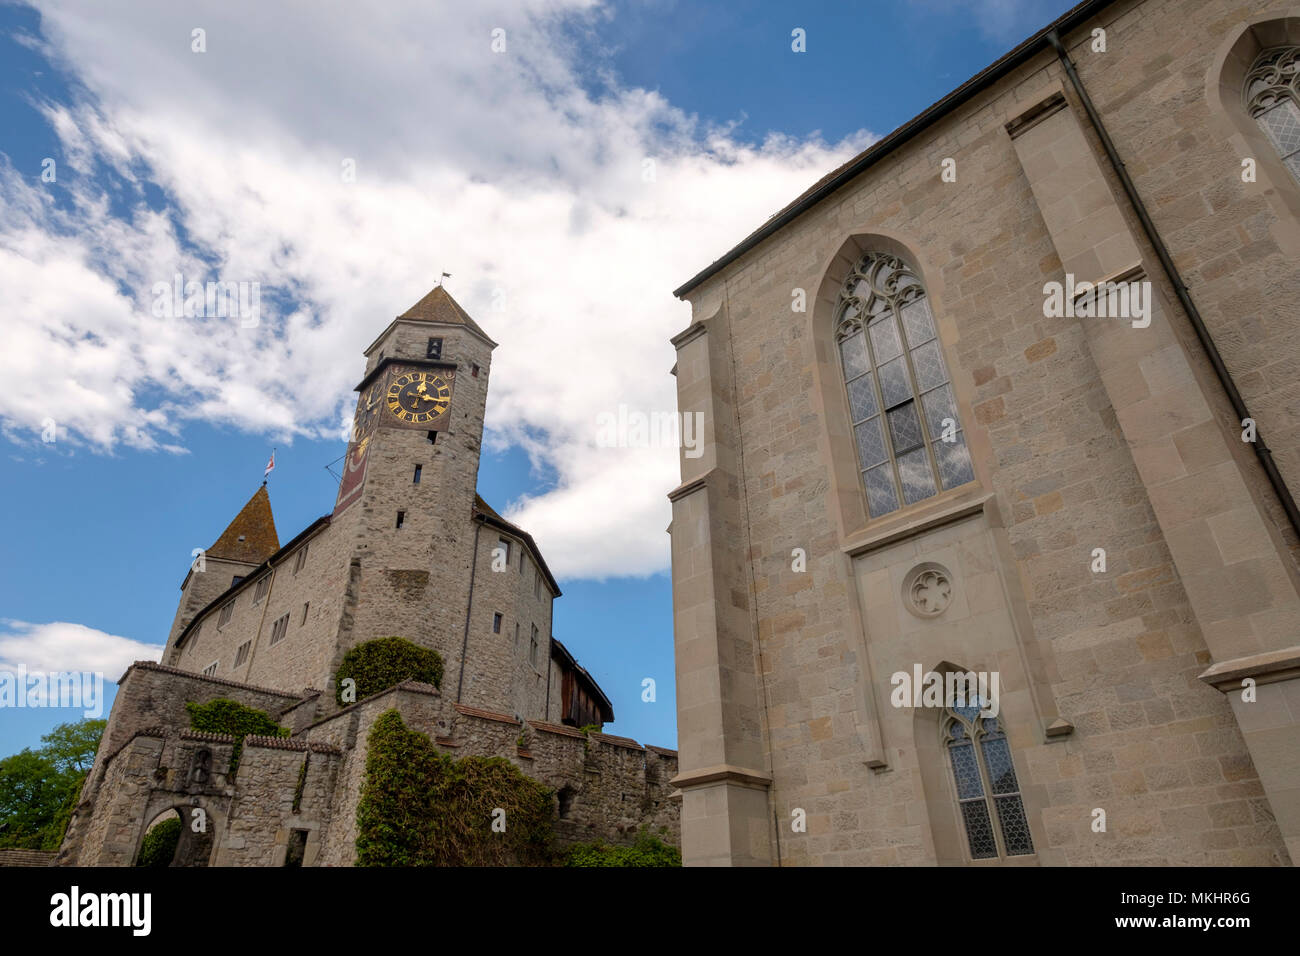 Rapperswil castle in Rapperswil-Jona, Switzerland, Europe - Stock Image